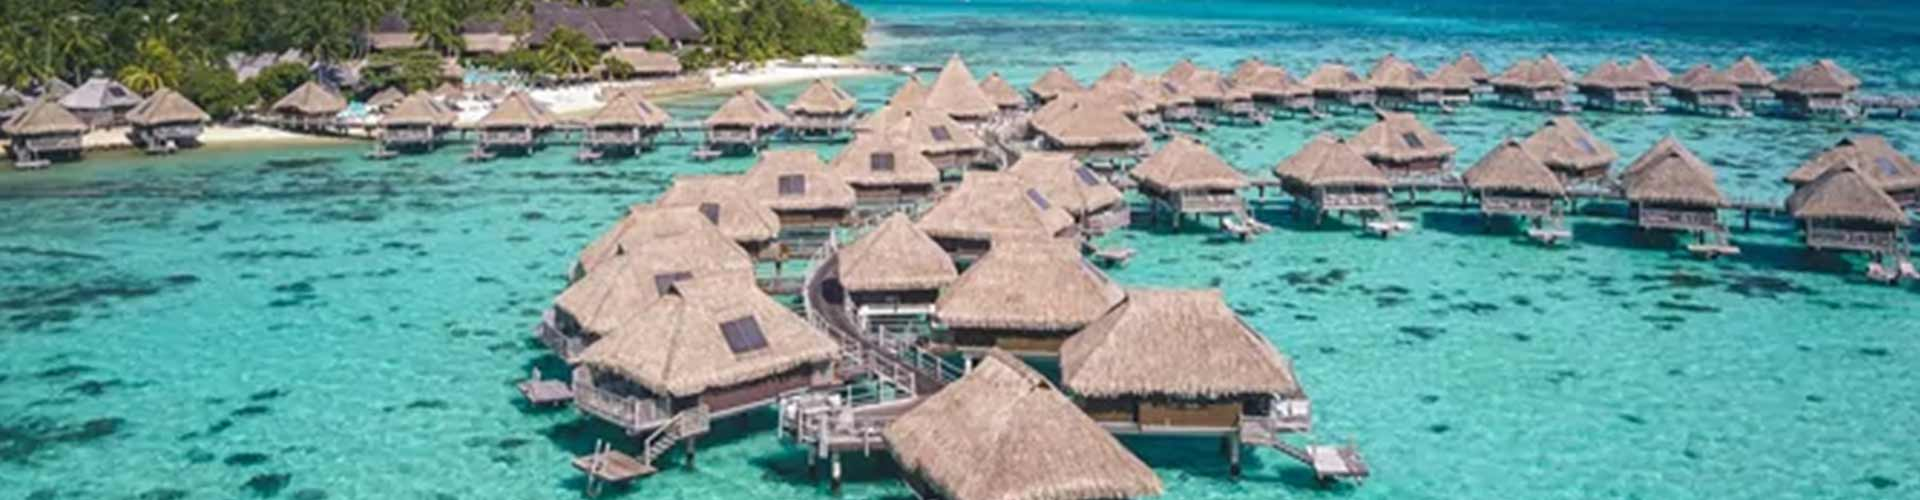 hilton-moorea-lagoon-resort-spa-air-tahiti-